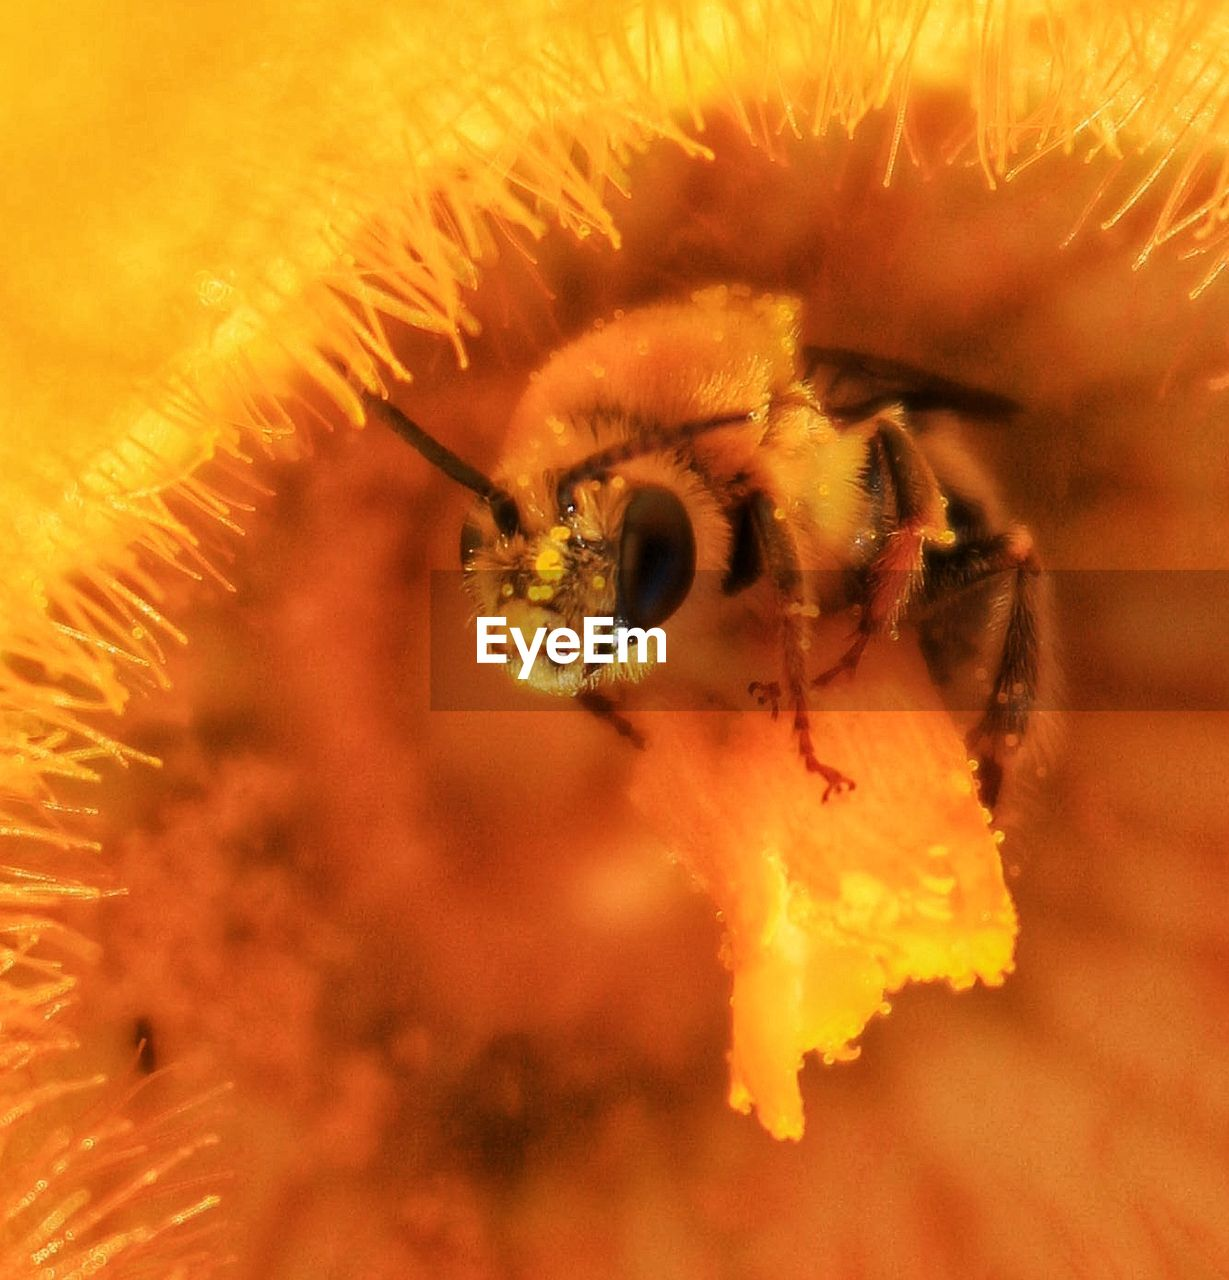 Extreme close-up of bee pollinating on flower